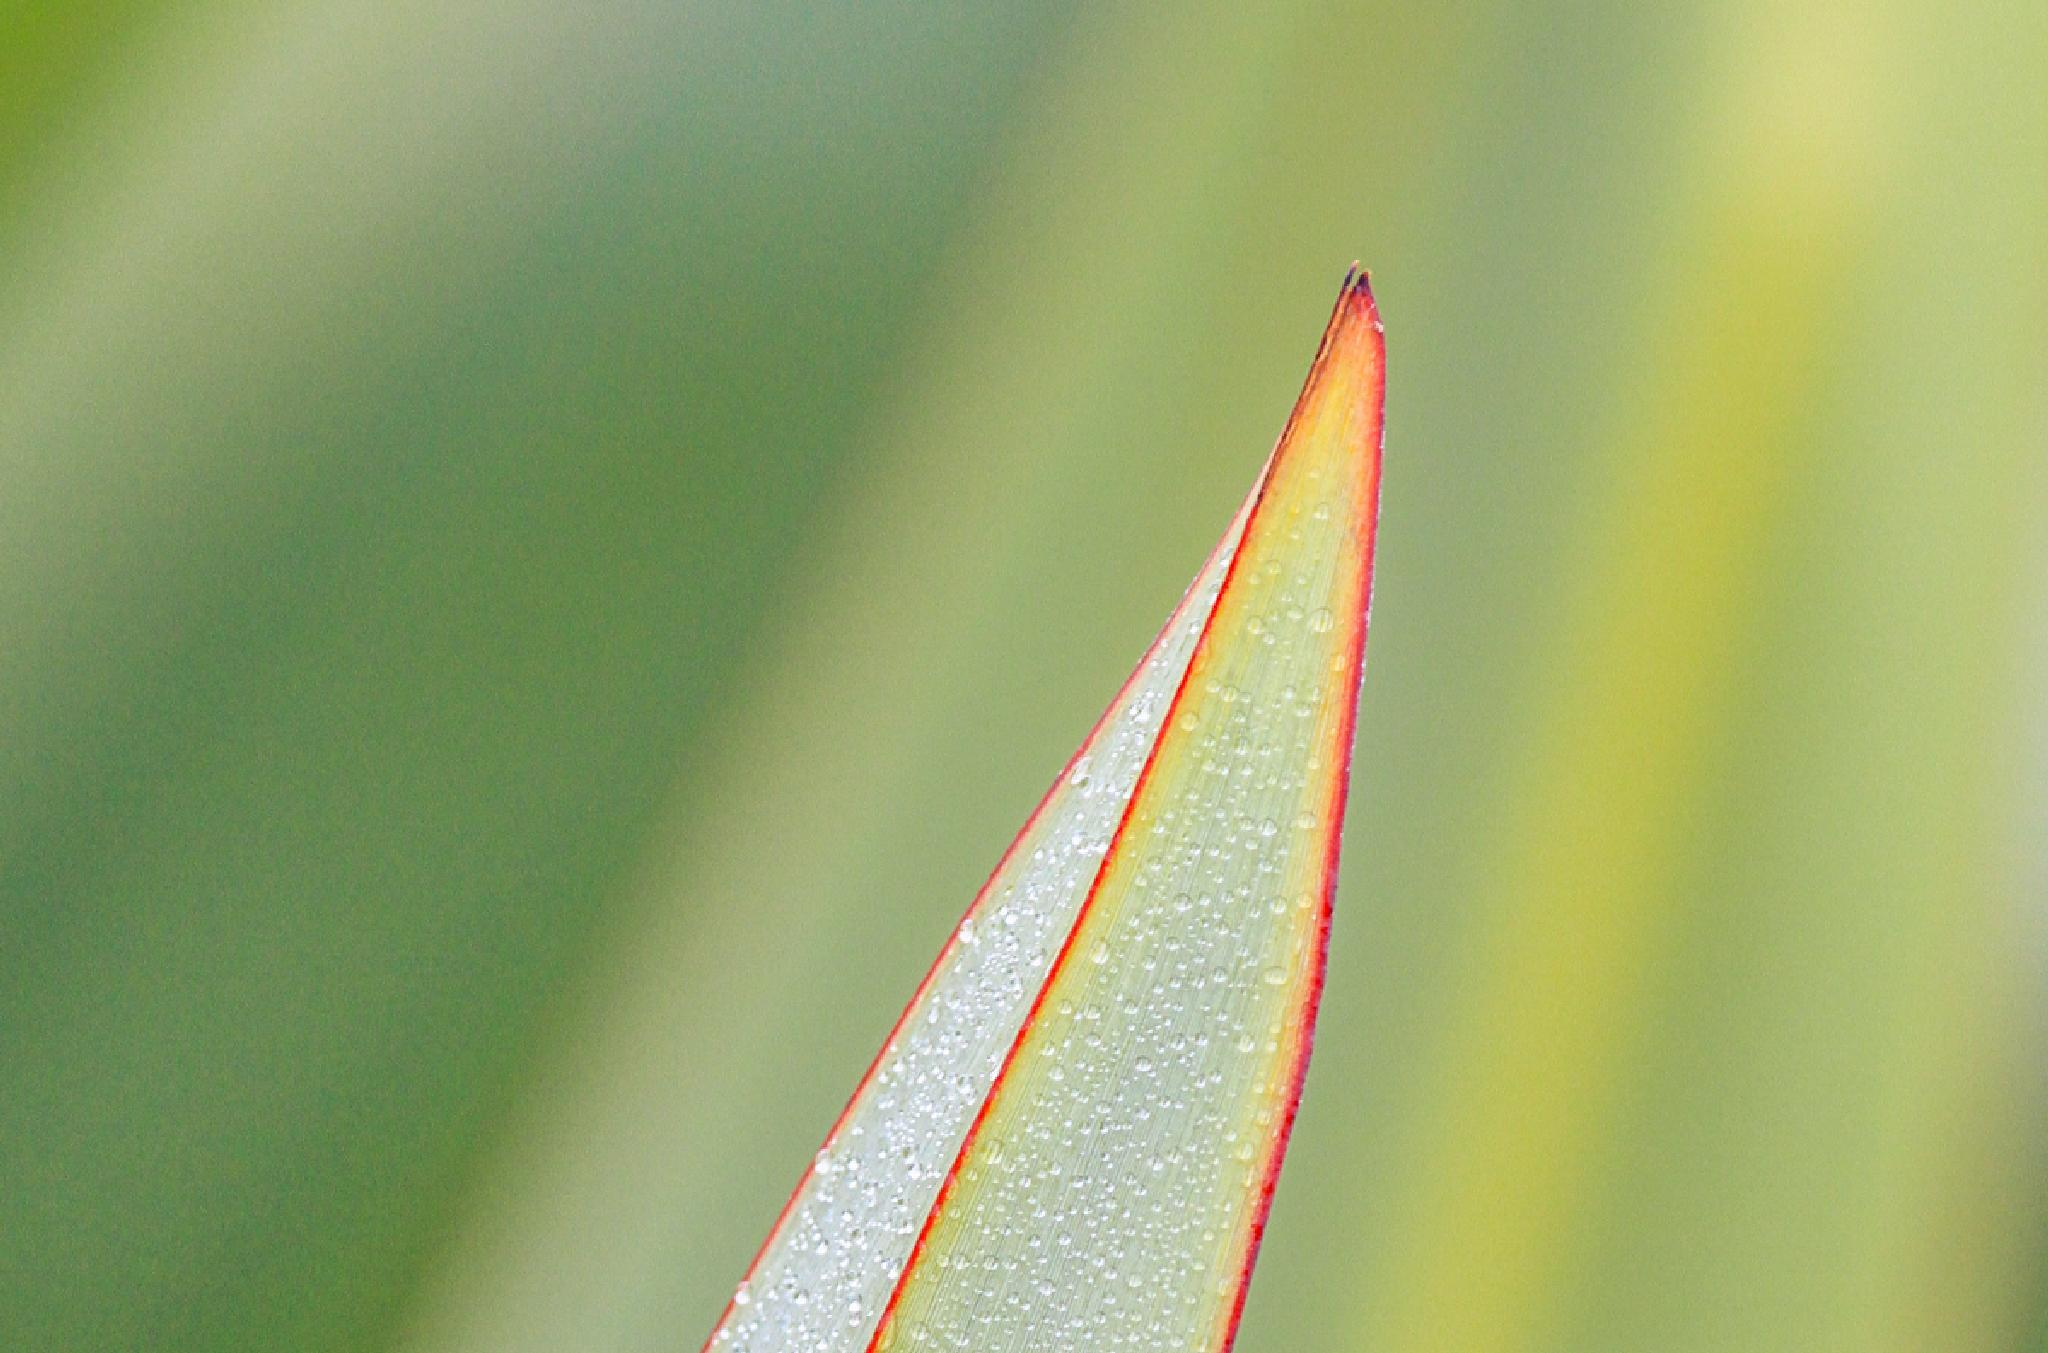 Dew on a leaf by MarkBriscoe